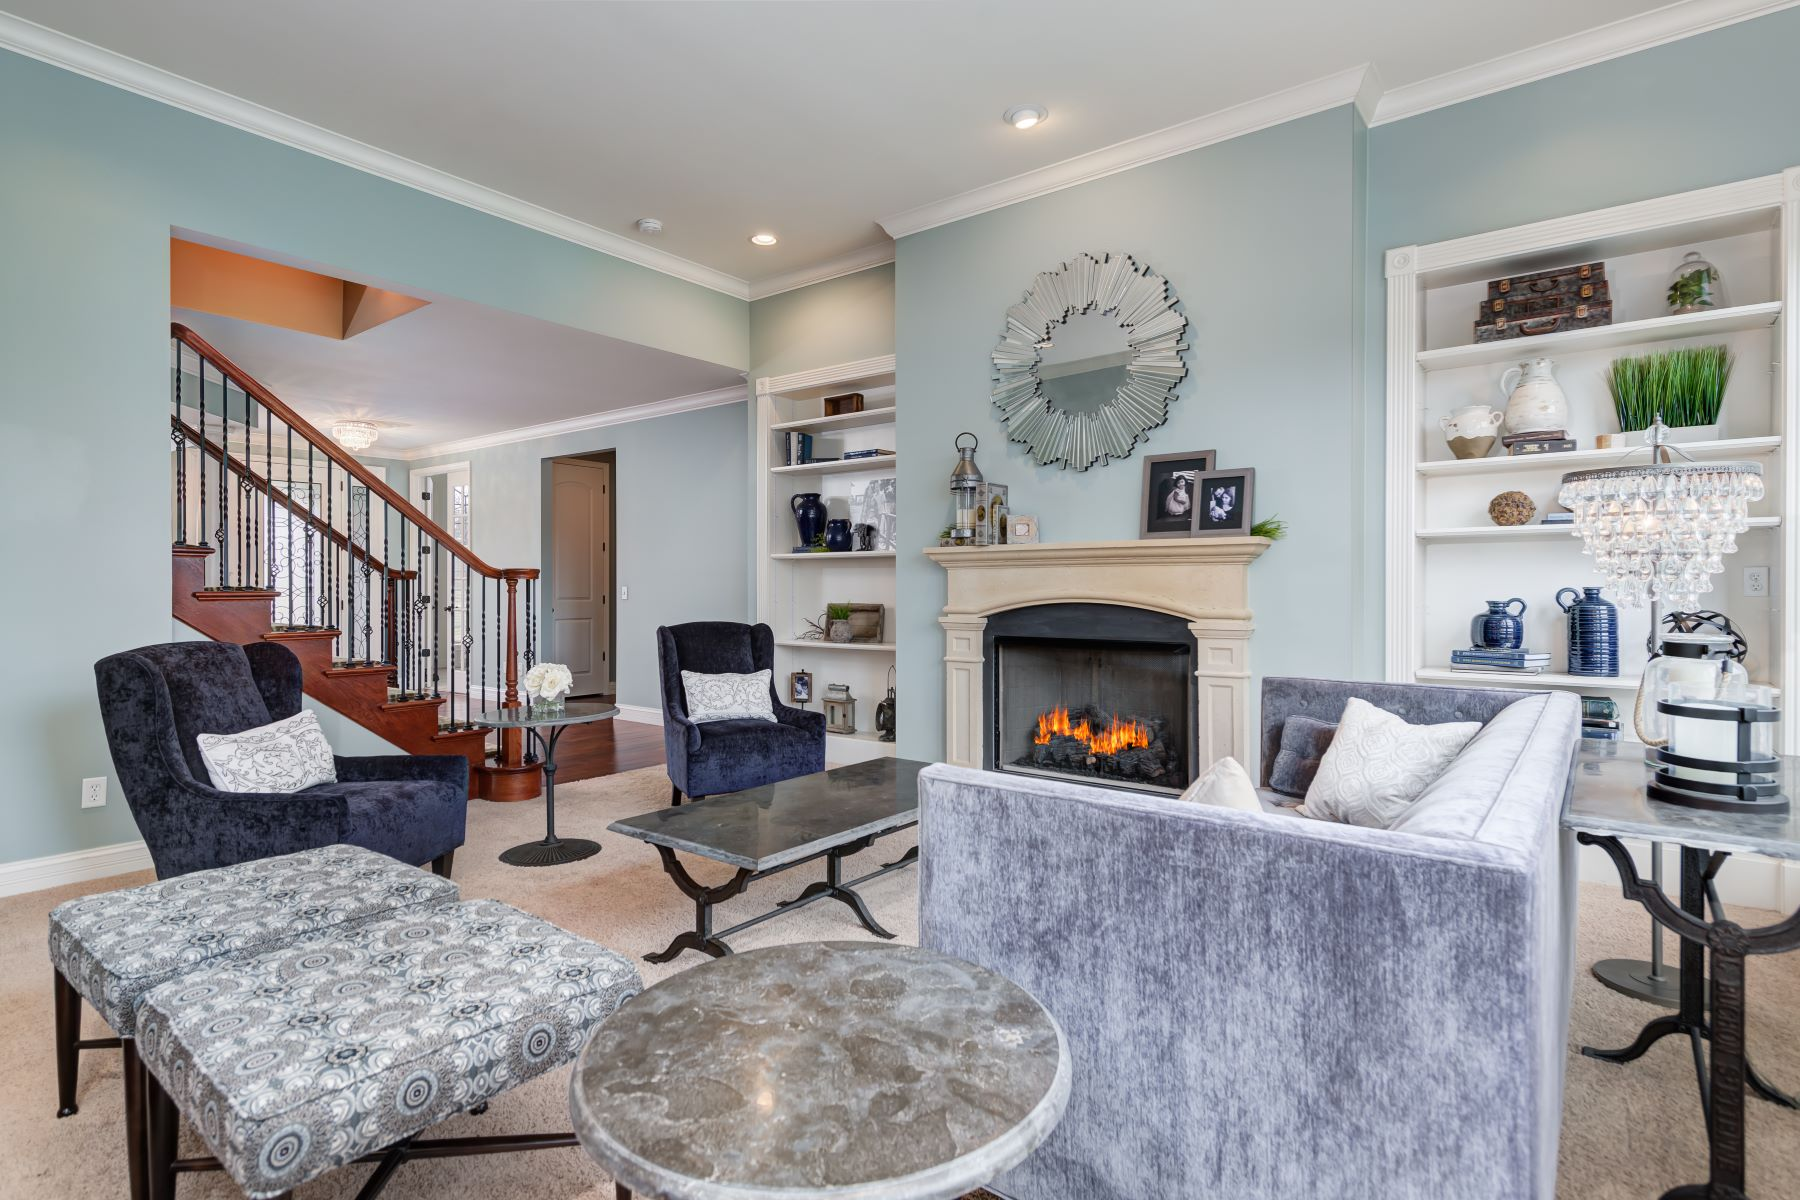 Additional photo for property listing at Creve Coeur Elegance in the Ladue School District 543 Oakhaven Lane Creve Coeur, Missouri 63141 United States